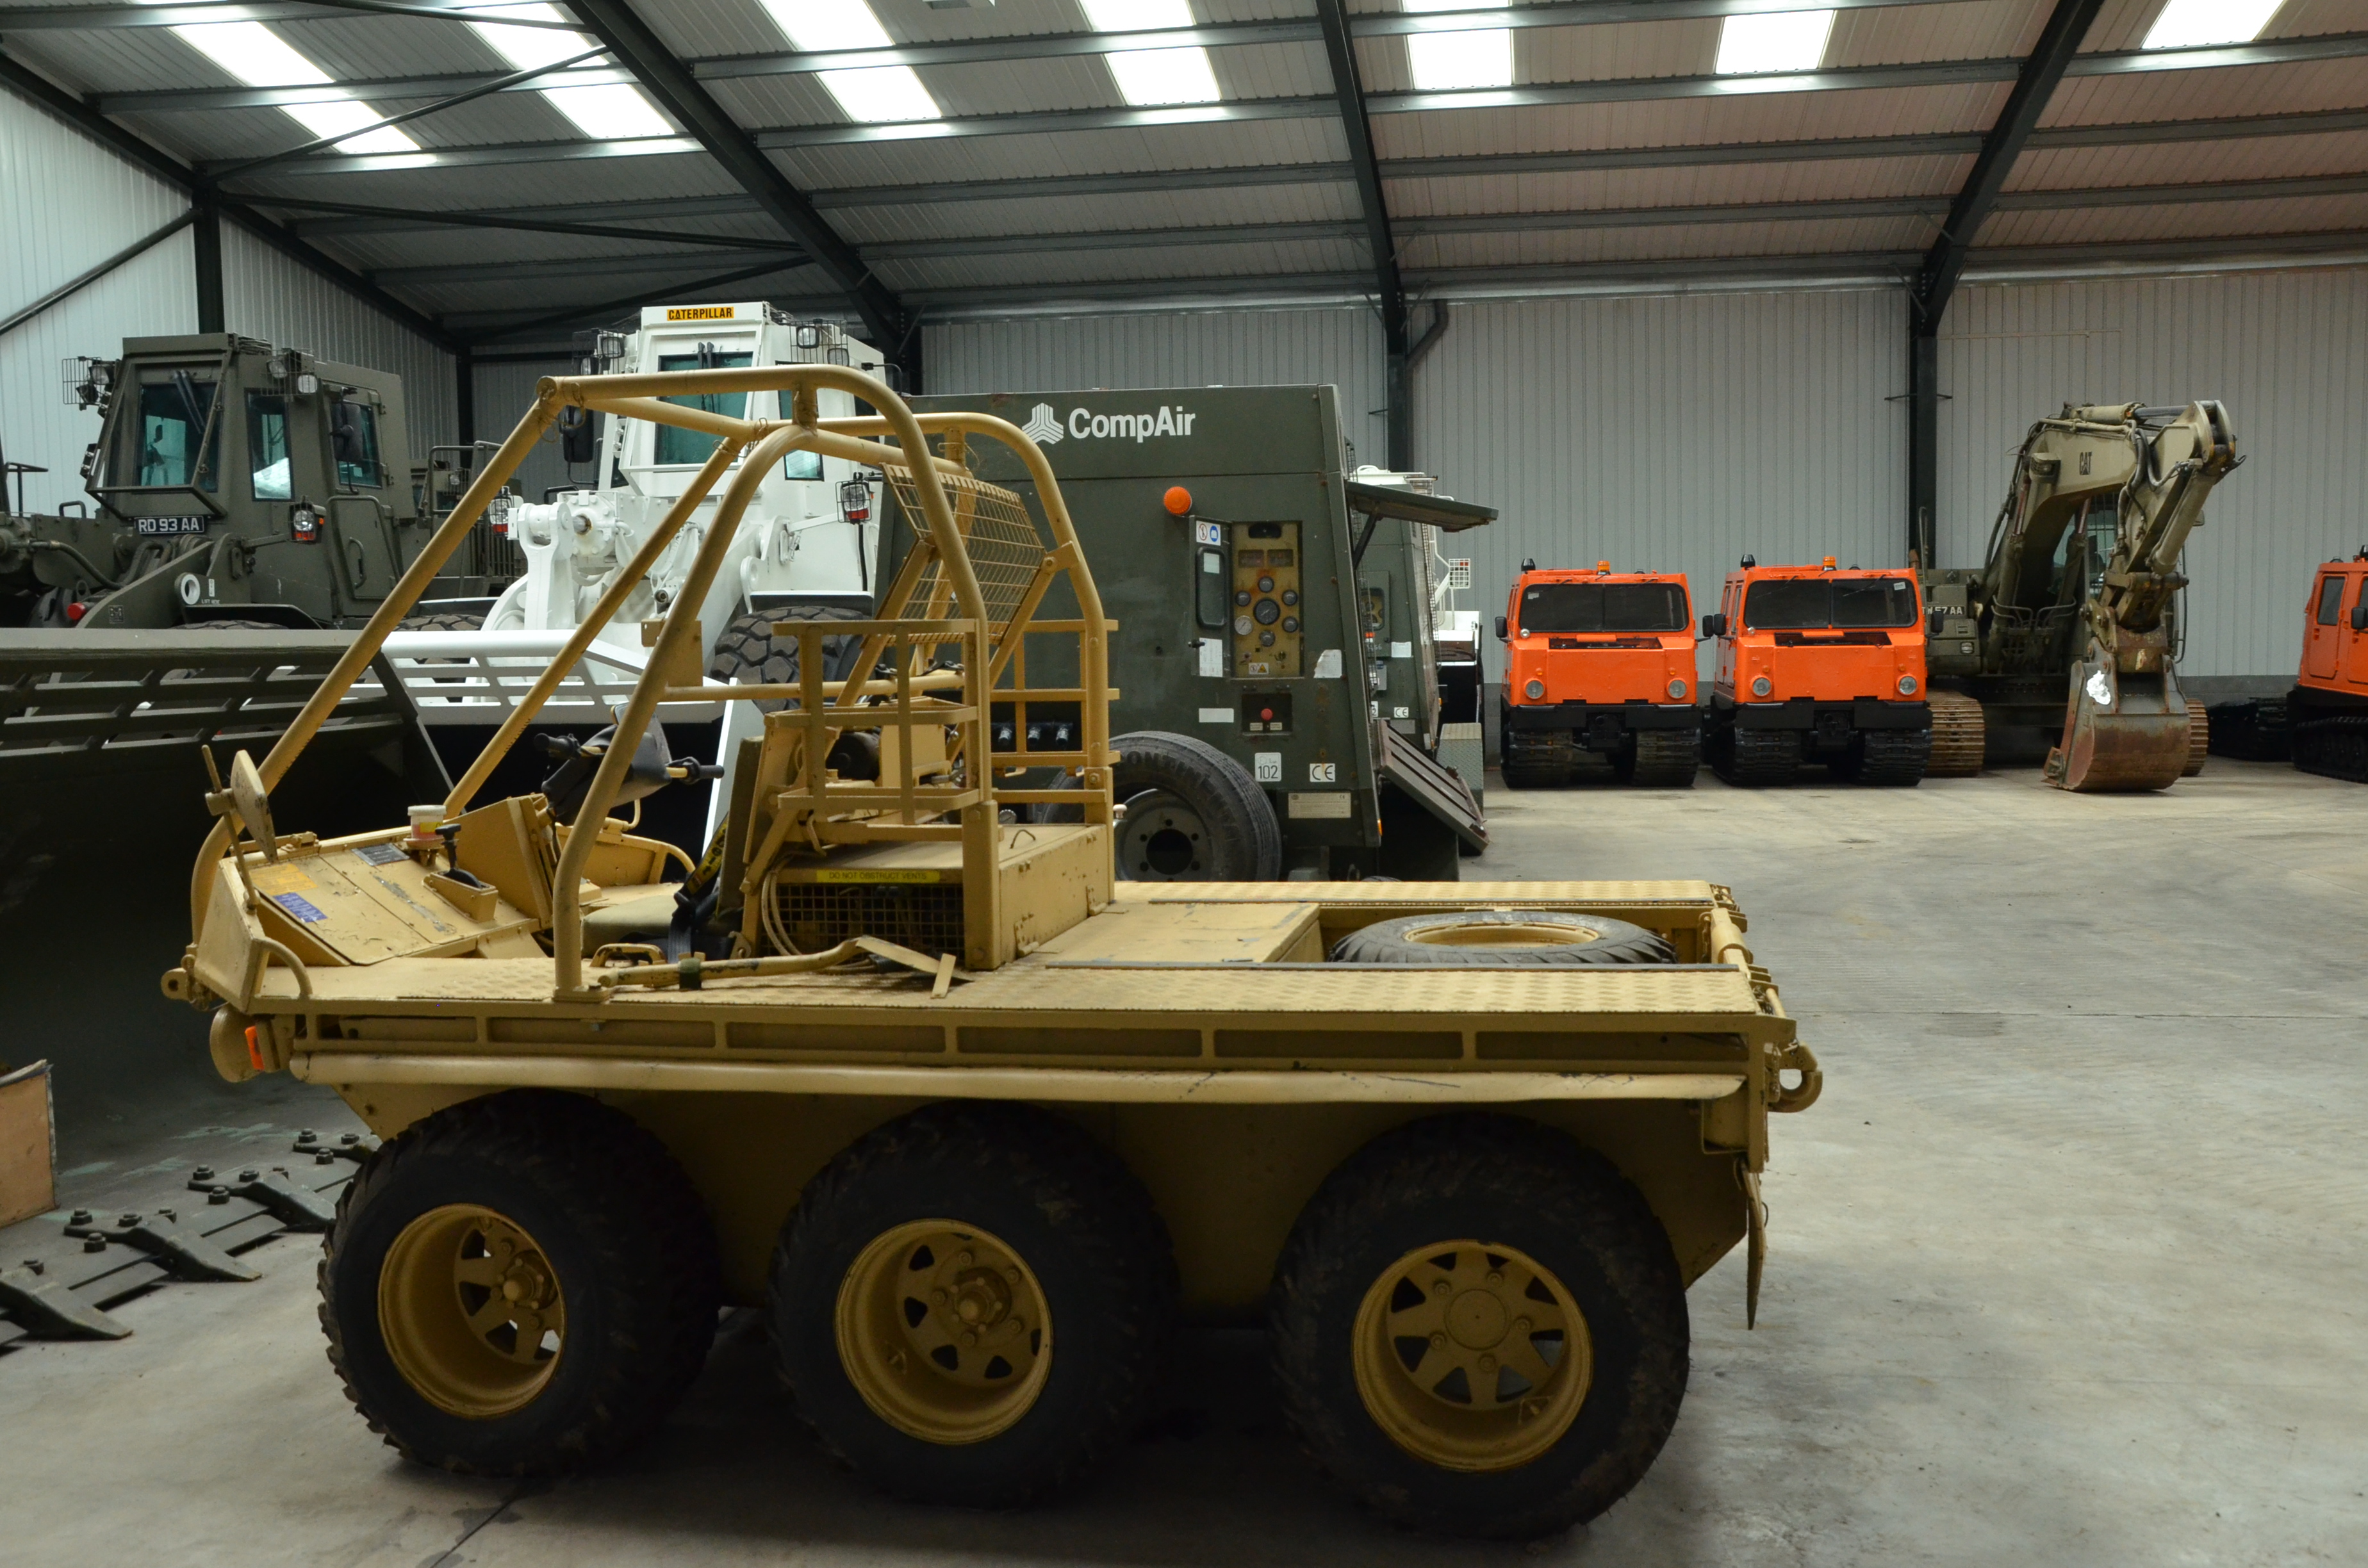 Was sold the Alvis Supacat 6x6 used Military trucks for sale in